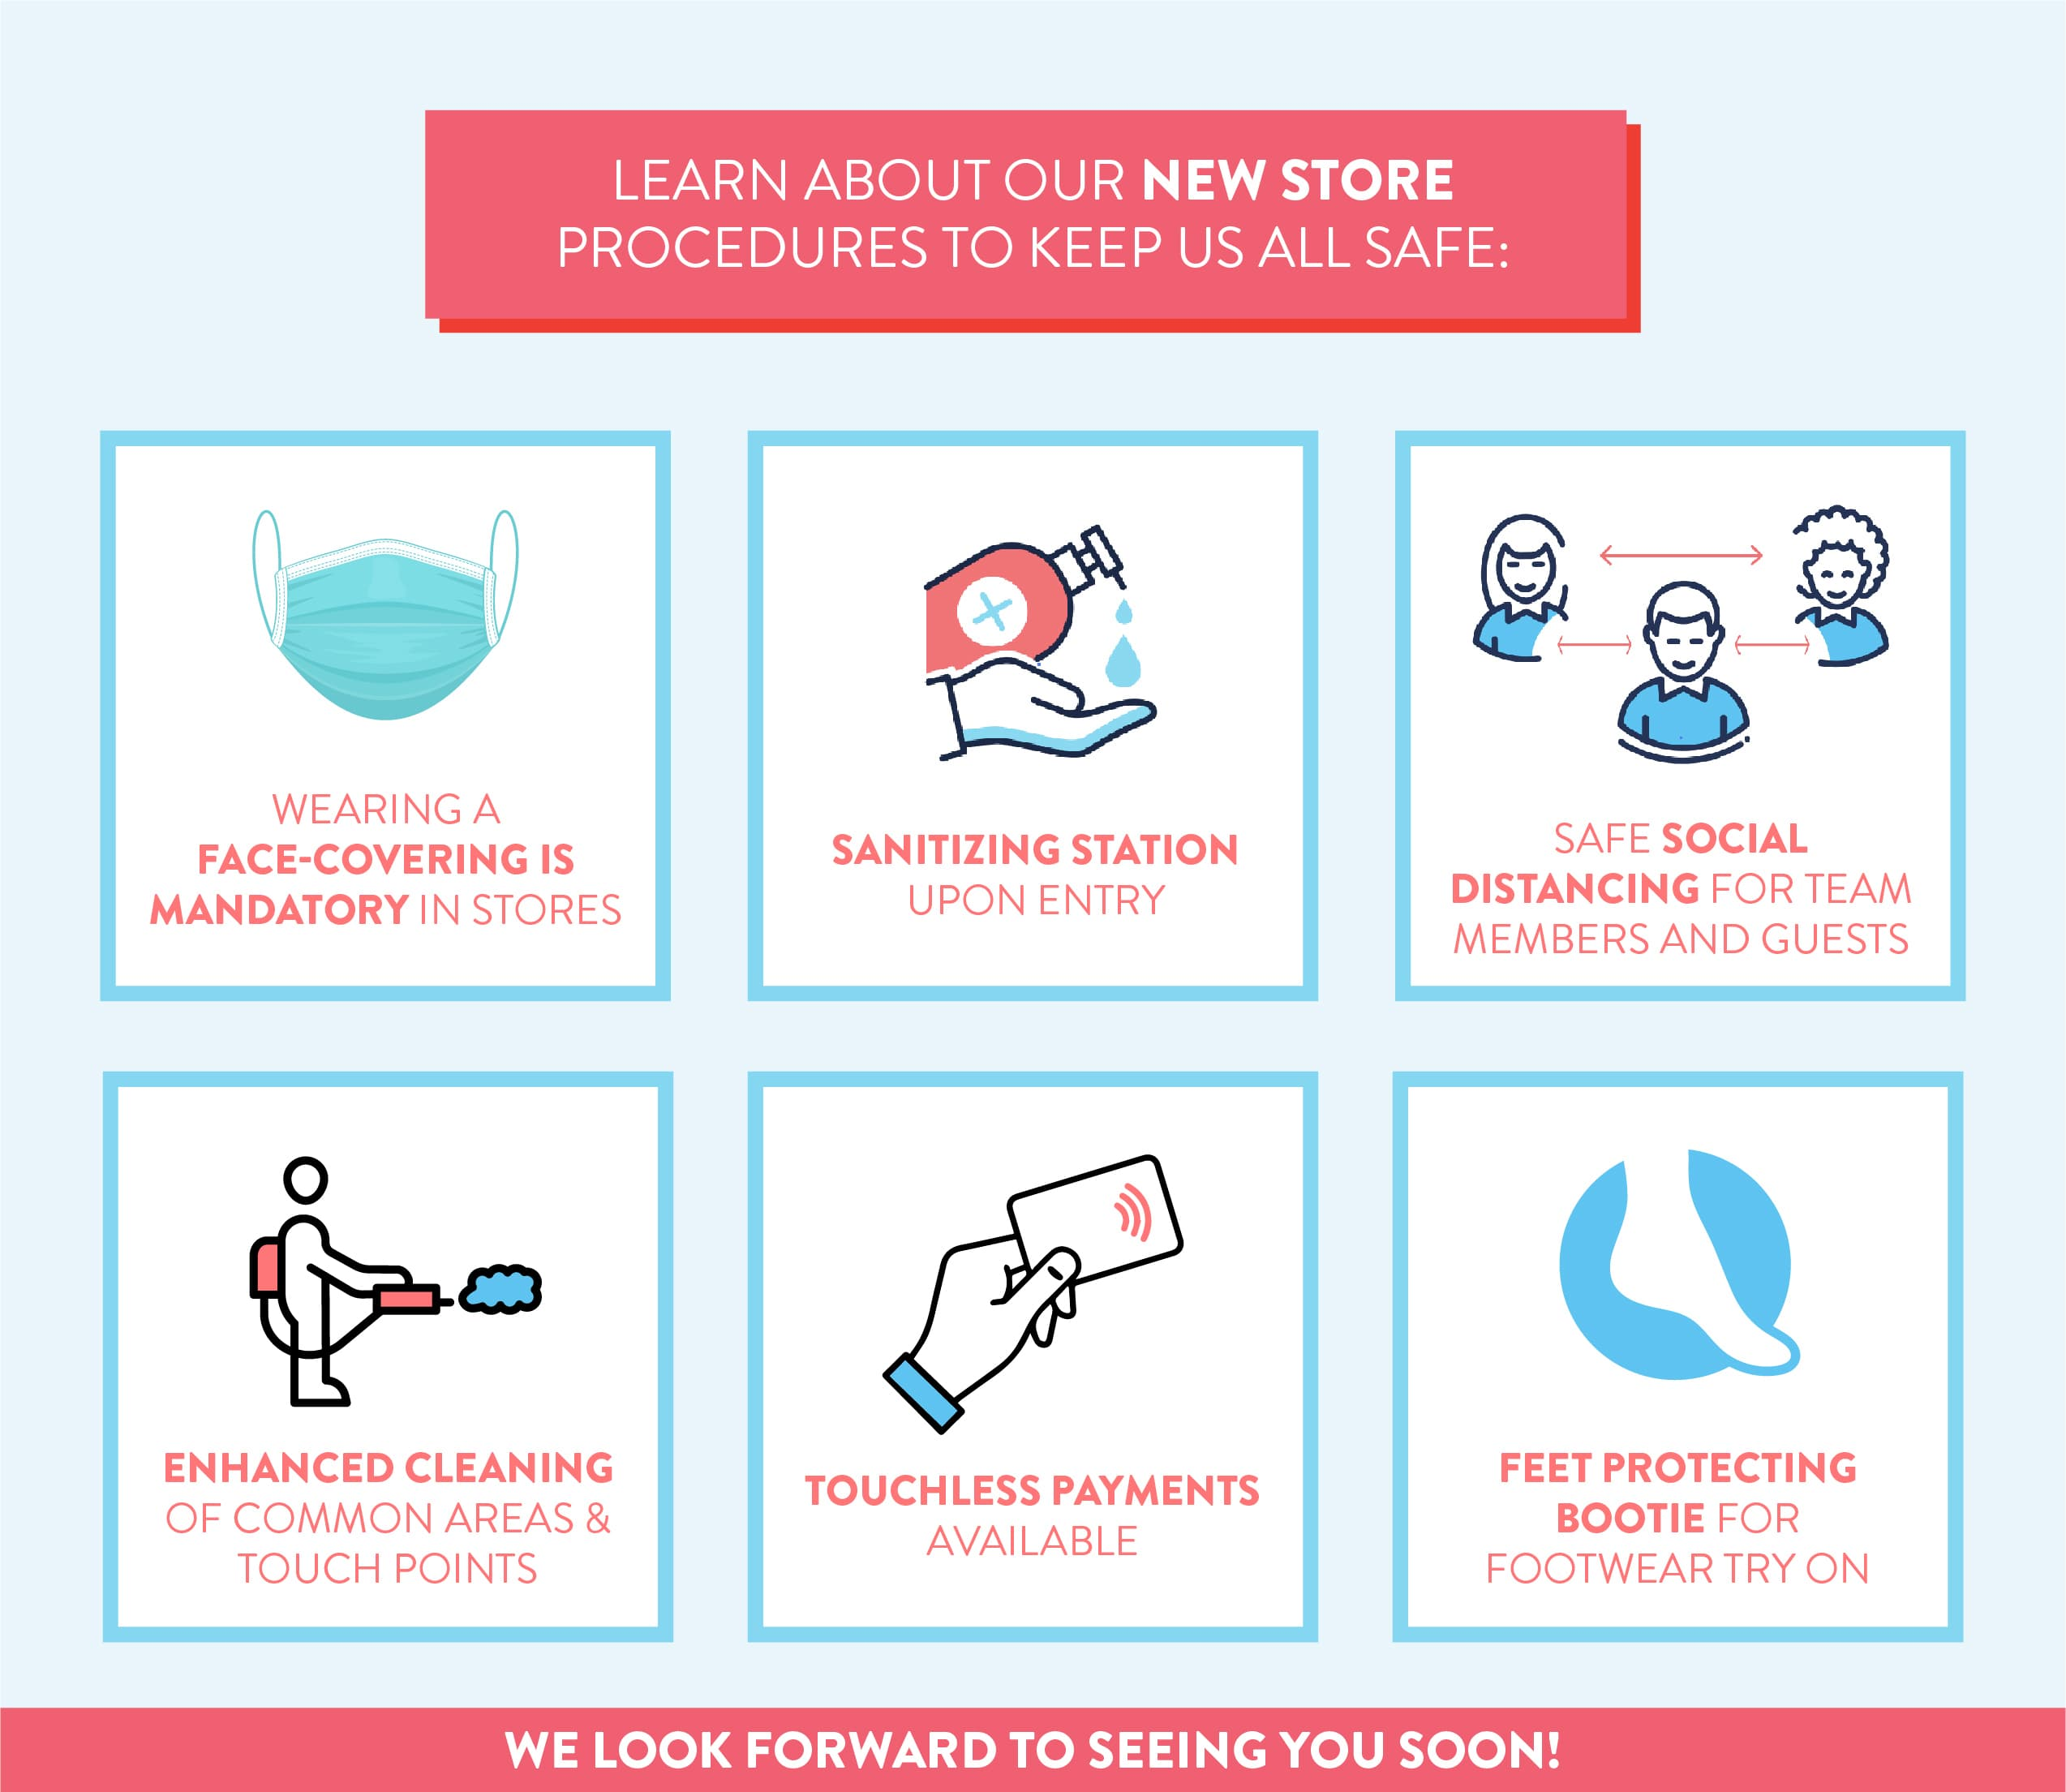 Learn about our new store procedures to keep us all safe